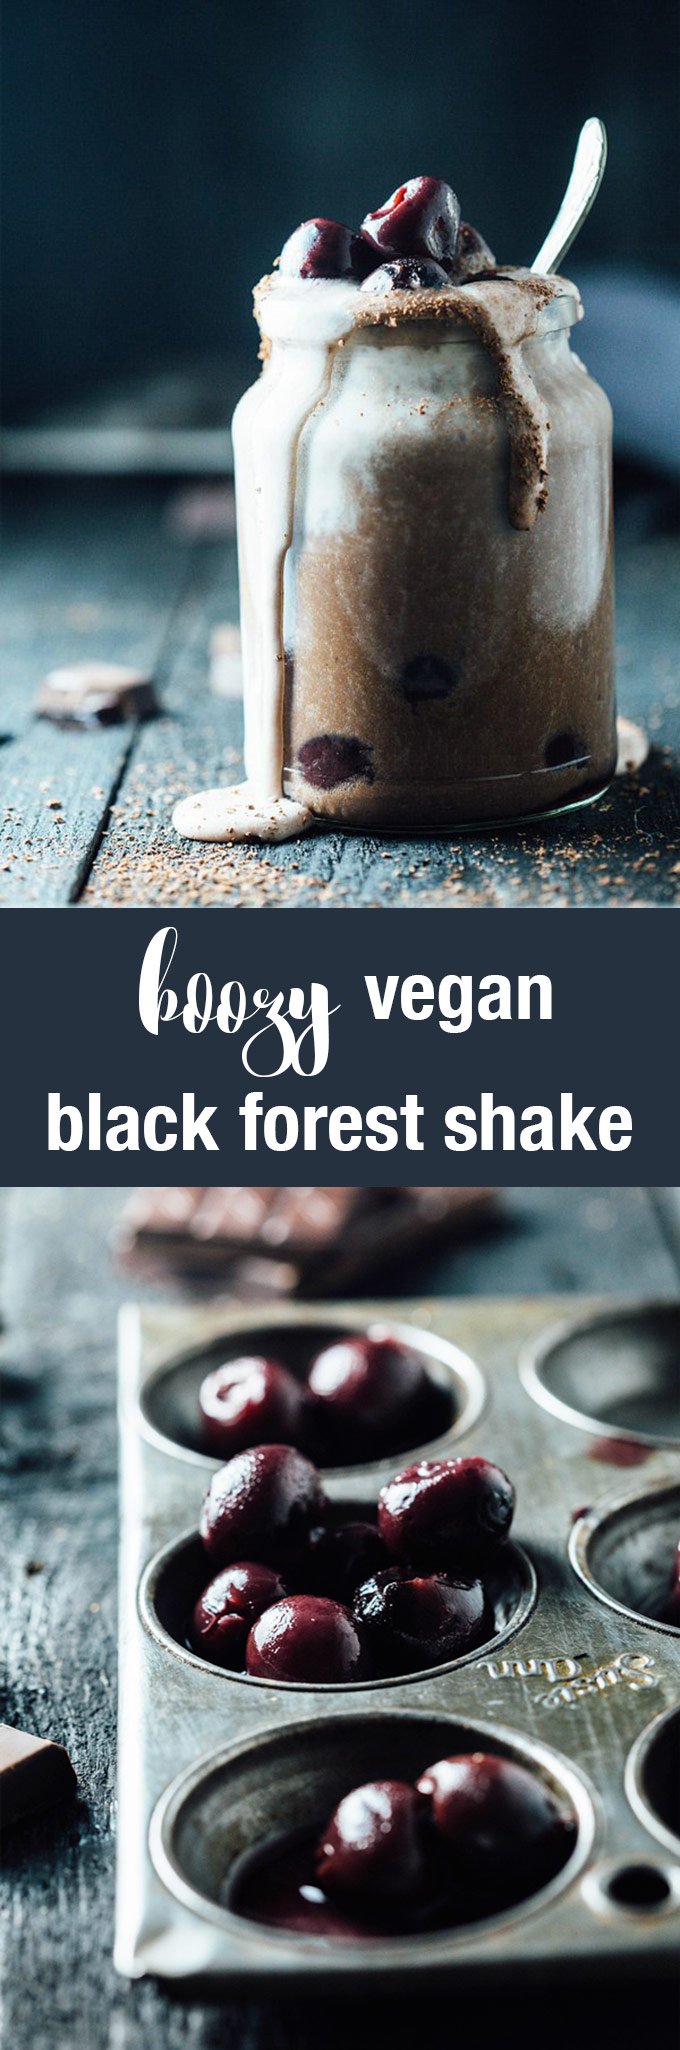 boozy-vegan-black-forest-shake-pin